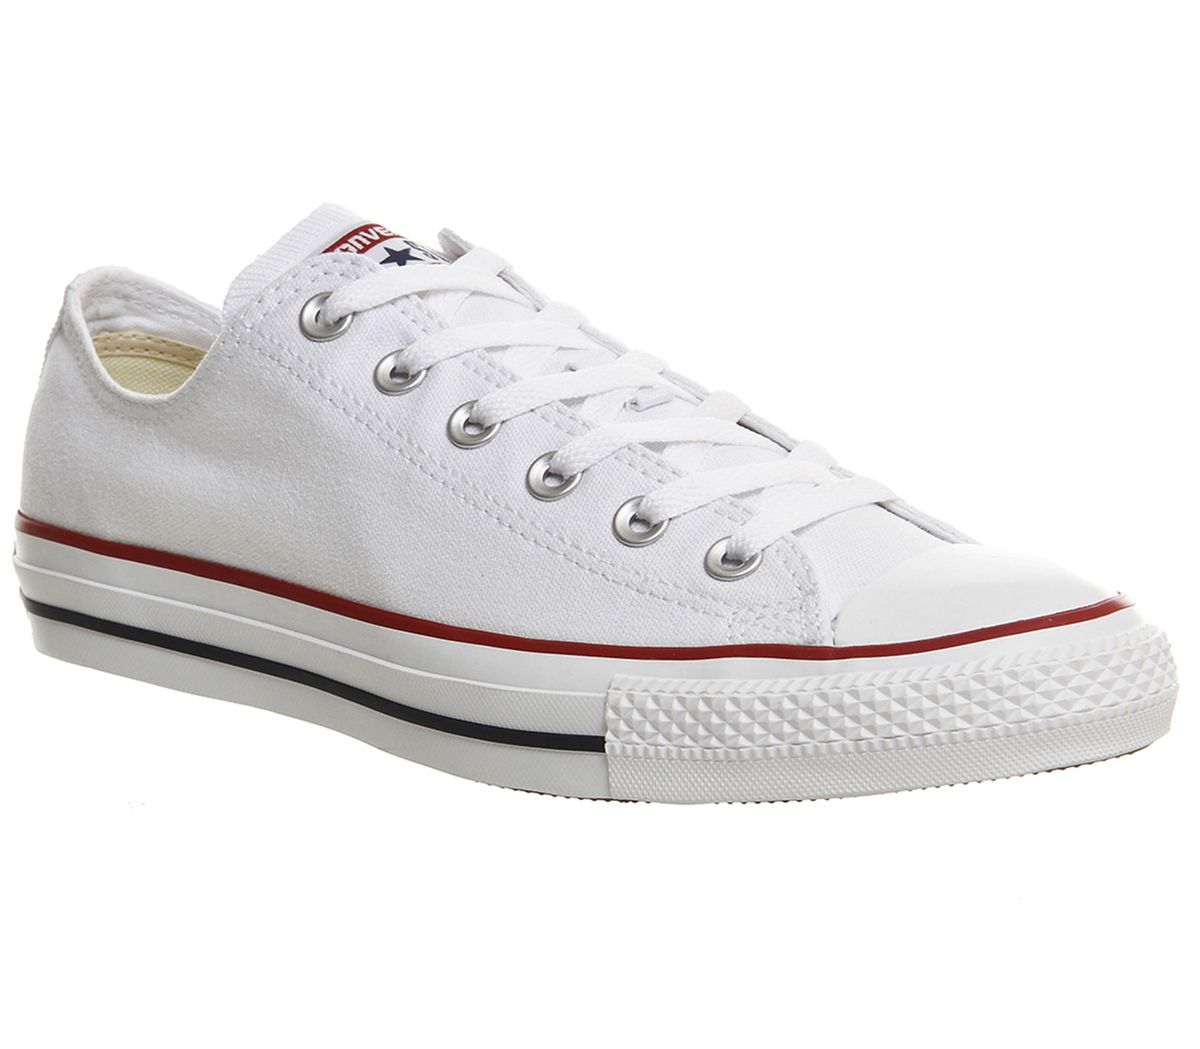 d1a1852d094f Converse All Star Low White Canvas - Unisex Sports